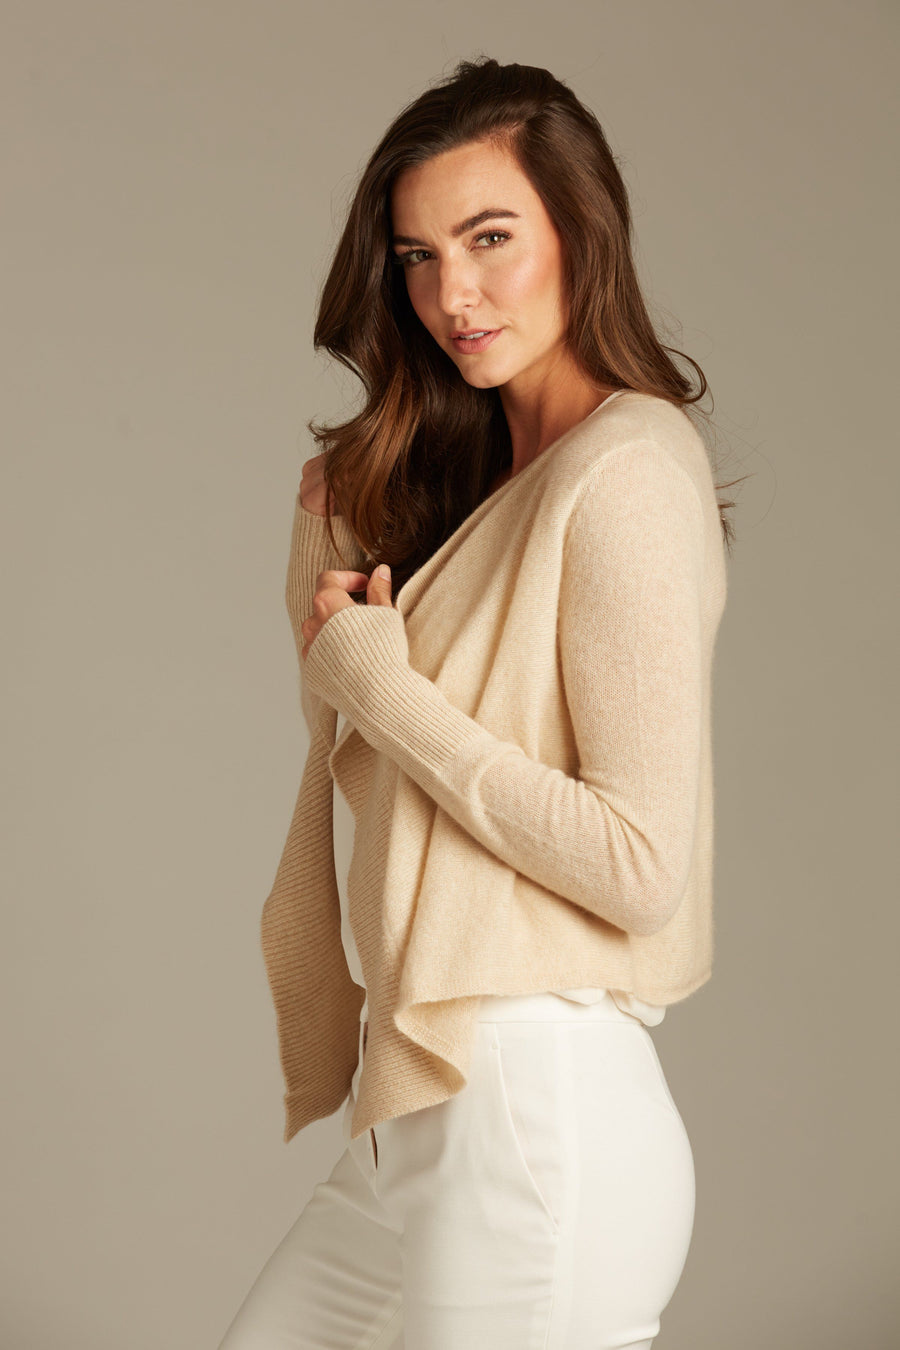 pine cashmere cami women's 100% pure organic cashmere open draped cardigan in tan